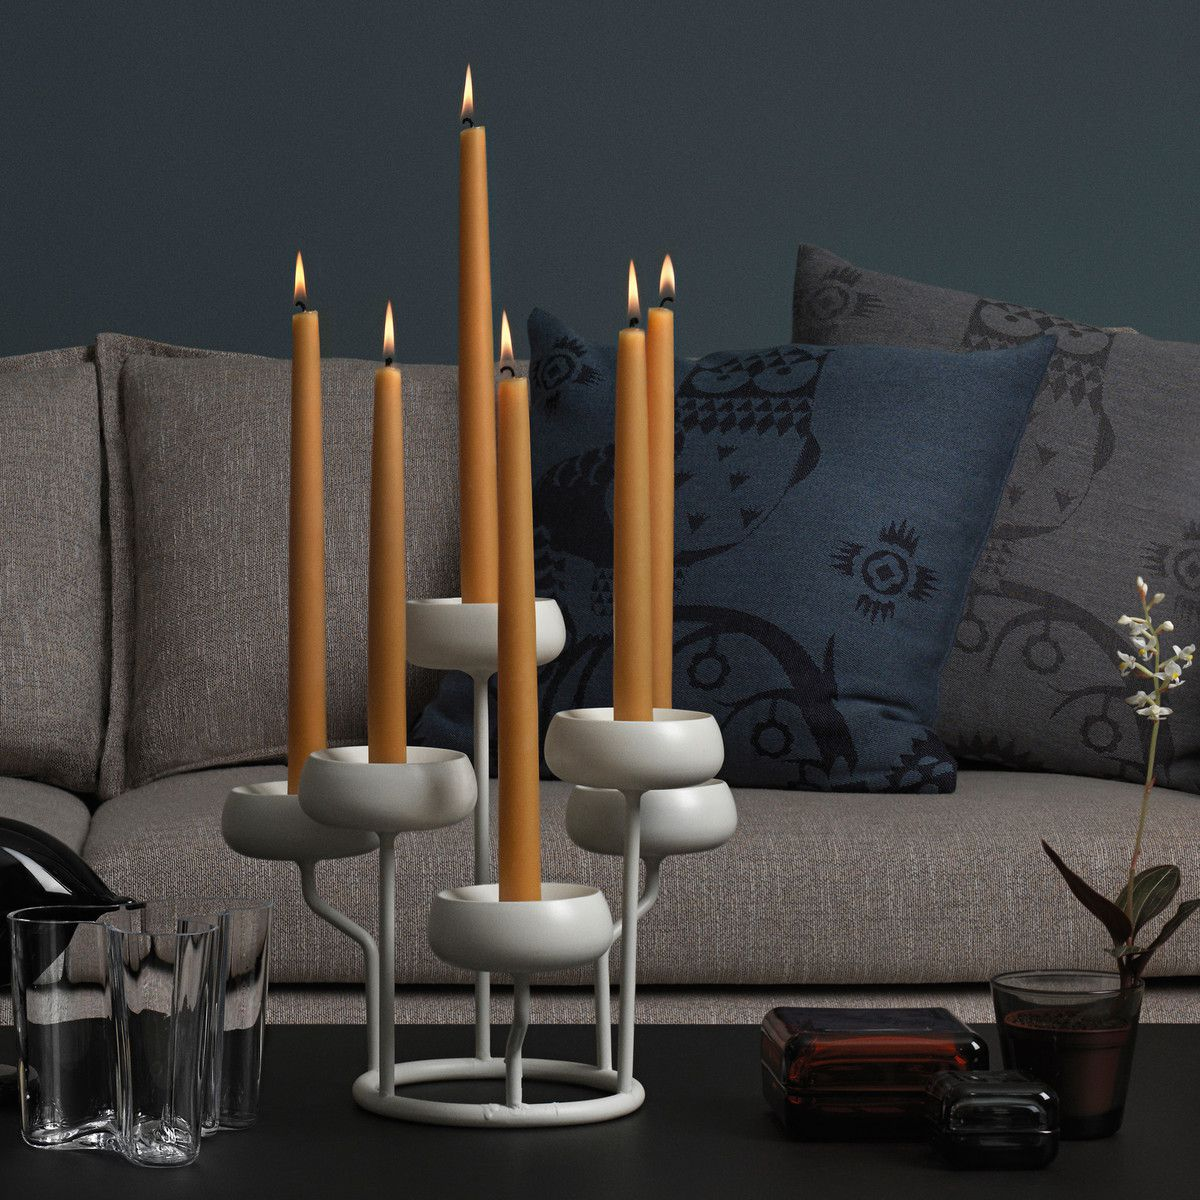 Iittala hygge candleholder with six lighted candles